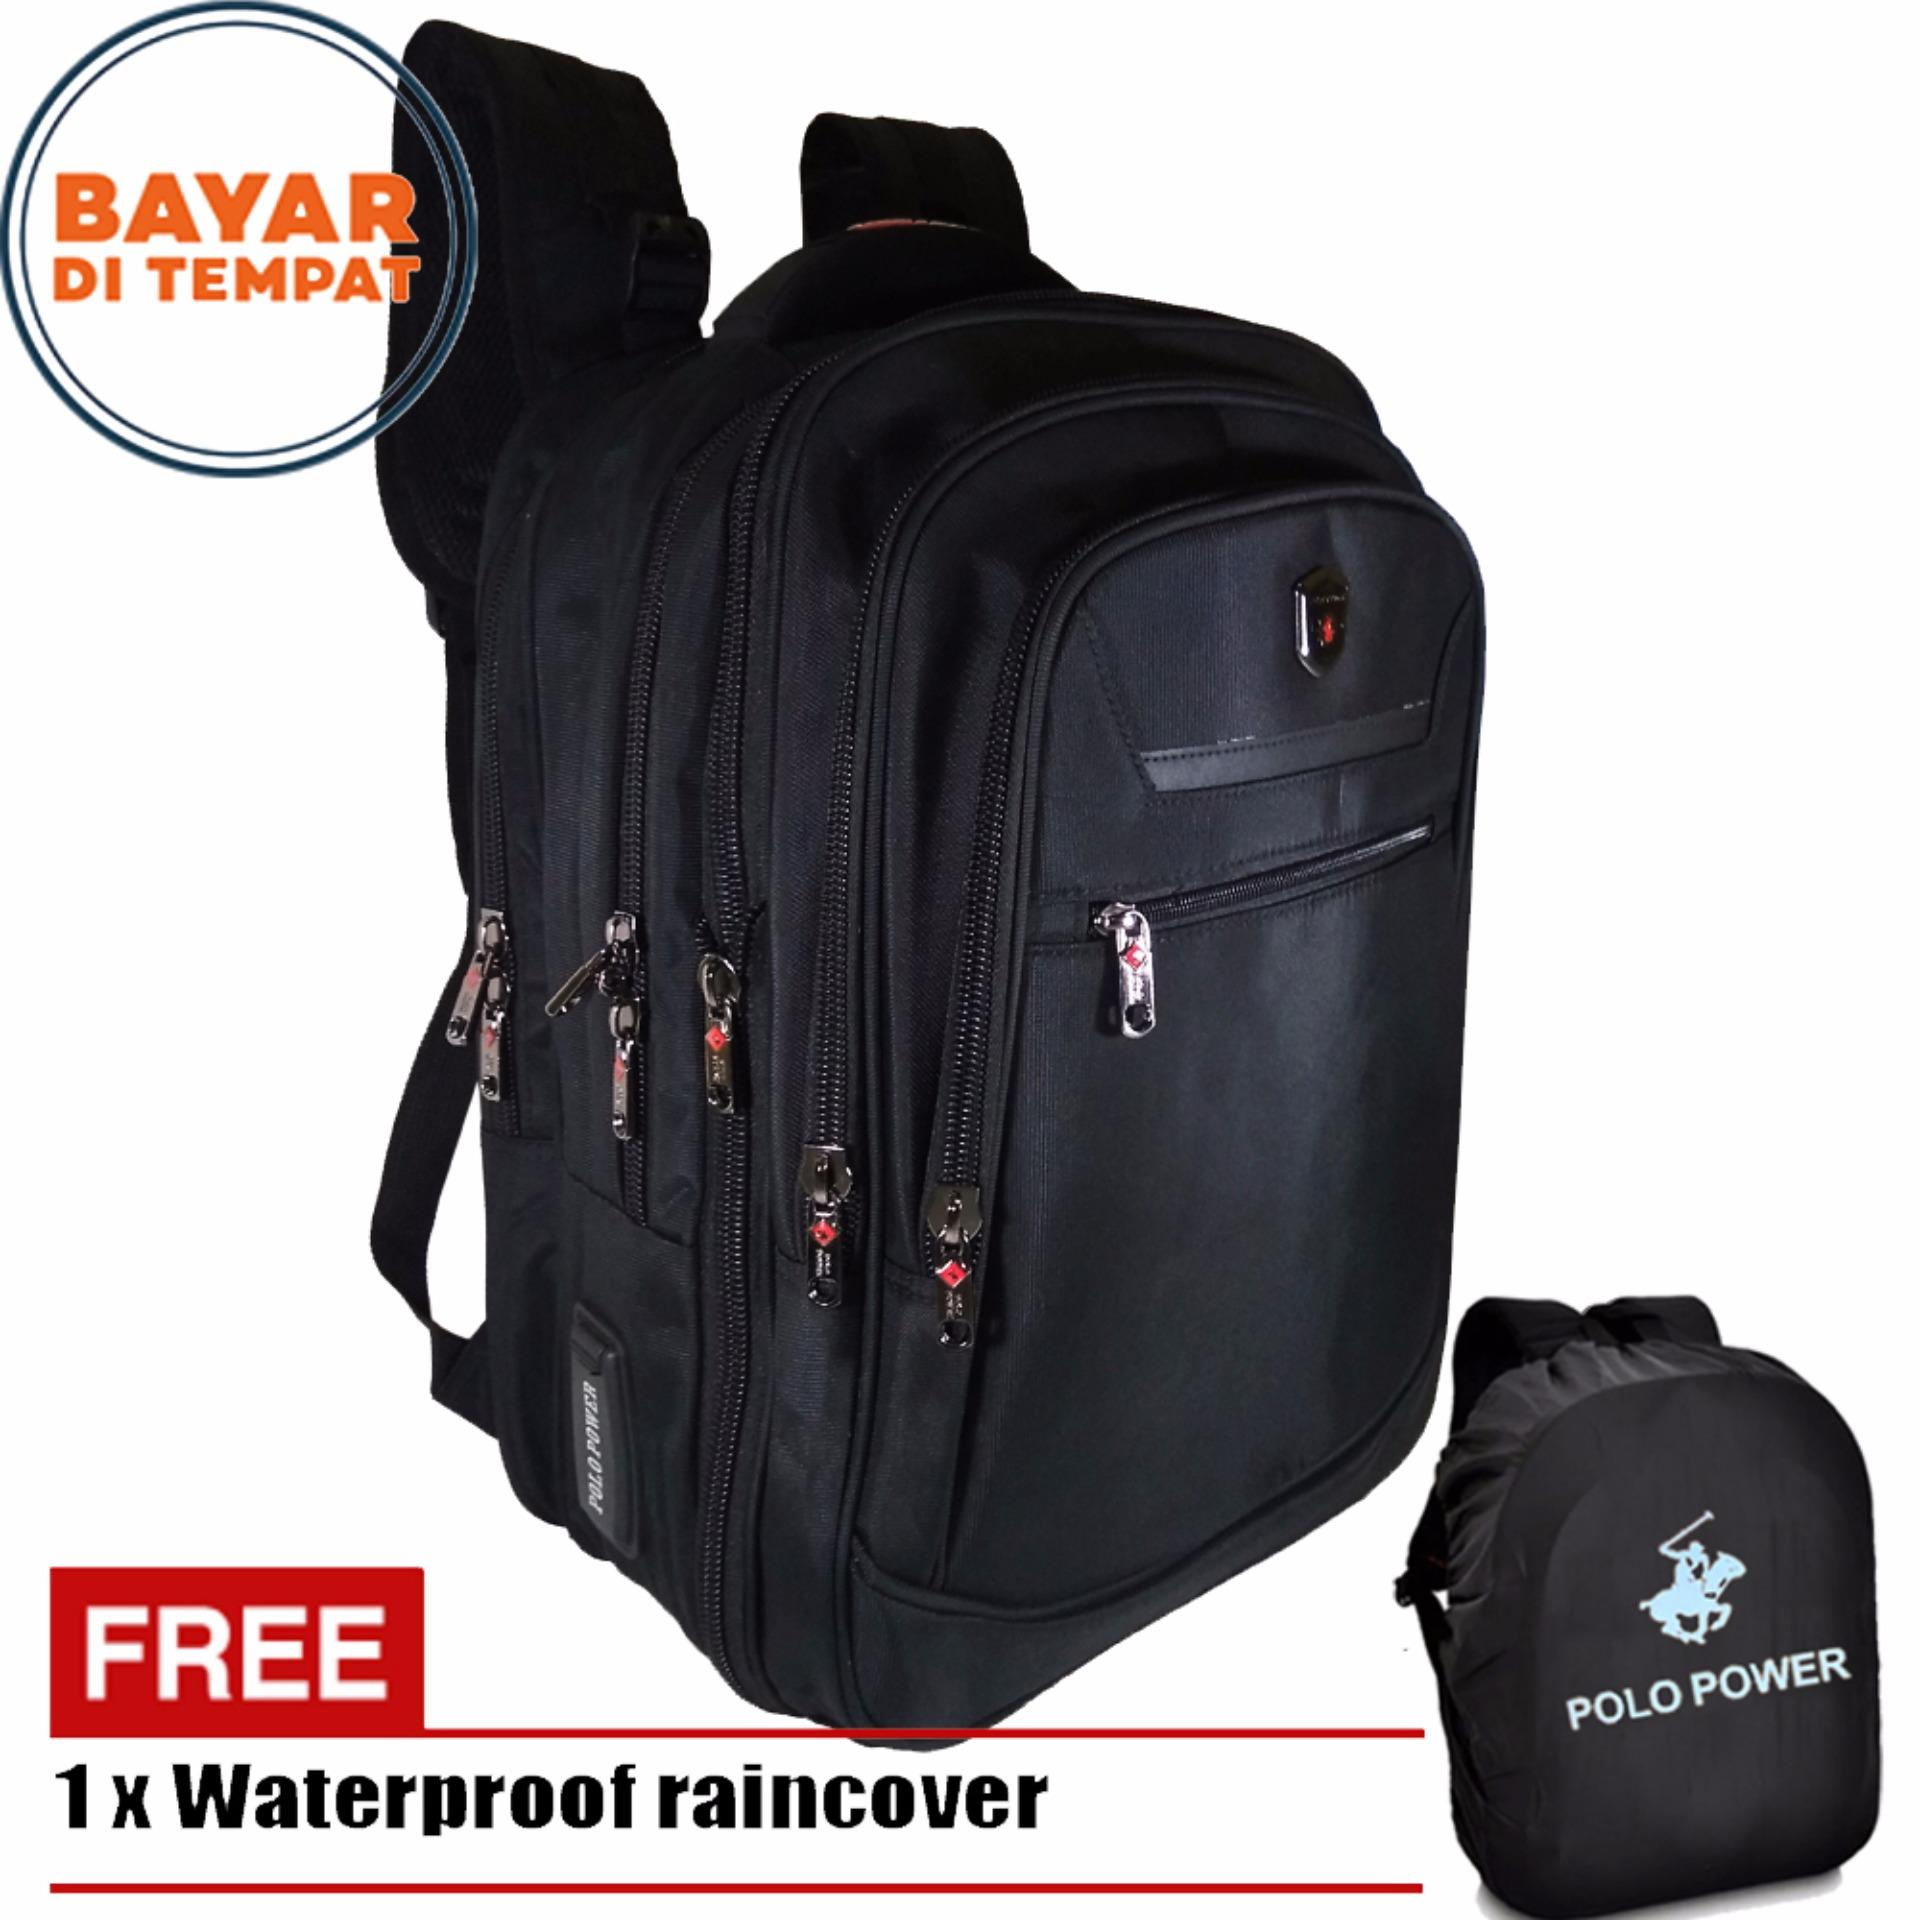 Harga Polo Power Tas Ransel Pria 18 Inchi Expandable 185003 Highest Spec Polo Backpack Import Original Black Raincover New